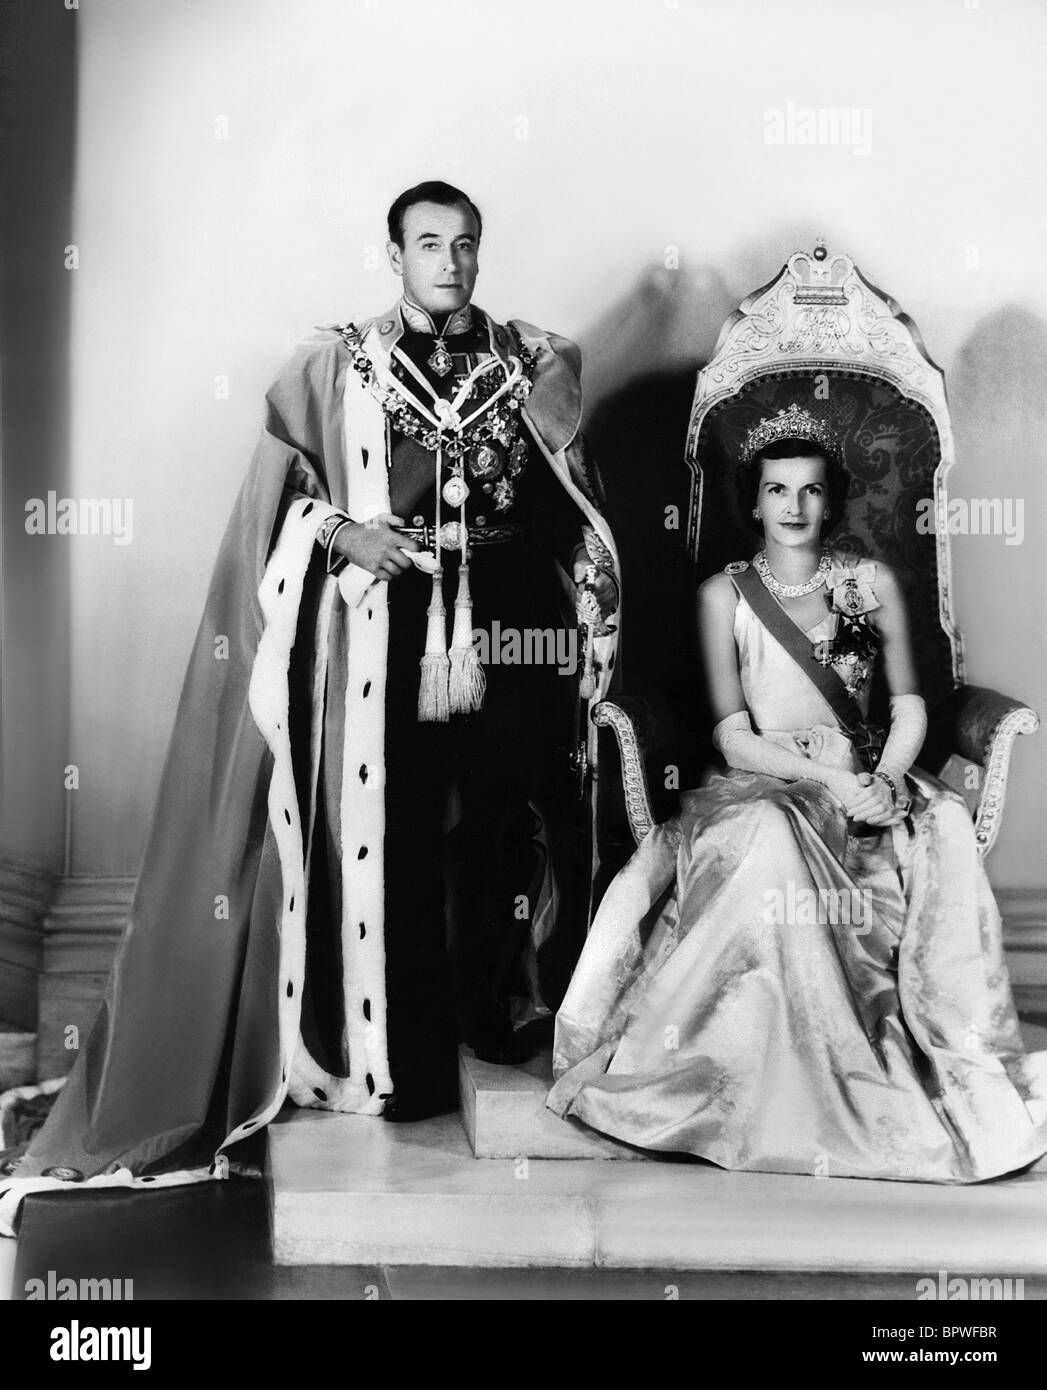 LORD & LADY MOUNTBATTEN ROYAL FAMILY 1947/1948 - Stock Image